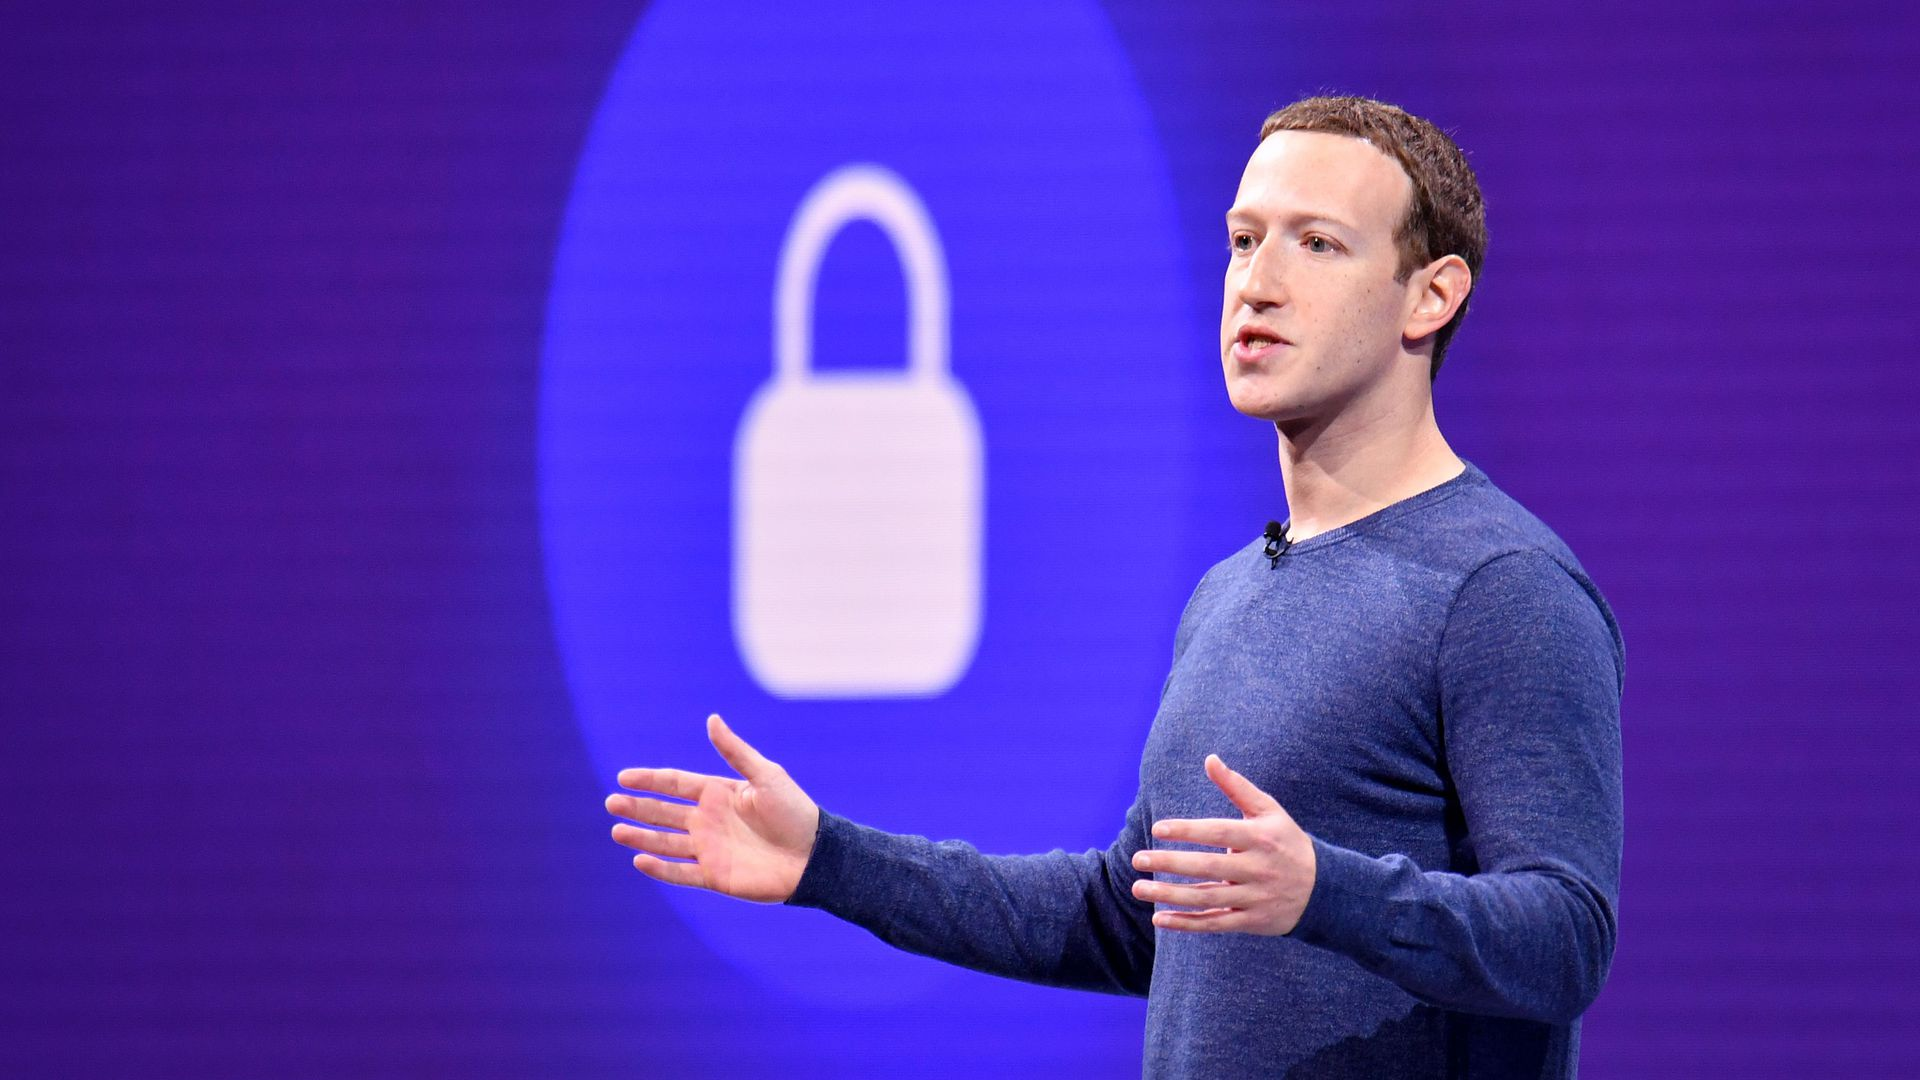 Photo of Facebook CEO Mark Zuckerberg with arms out and a lock icon projected behind him on stage